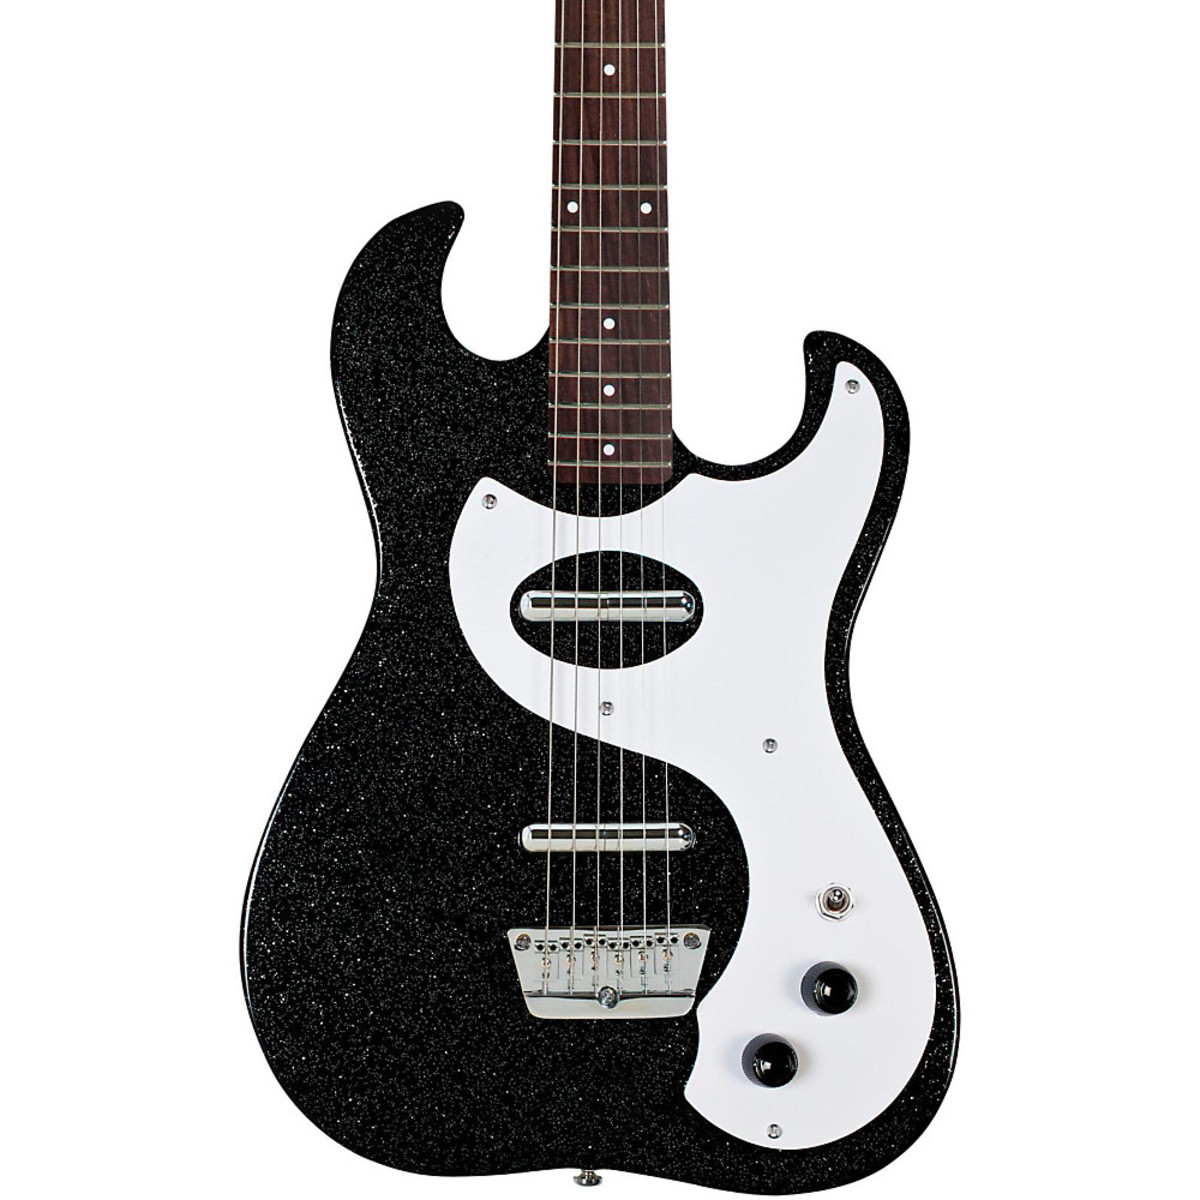 danelectro 63 double cutaway electric guitar black metal flake at gear4music. Black Bedroom Furniture Sets. Home Design Ideas